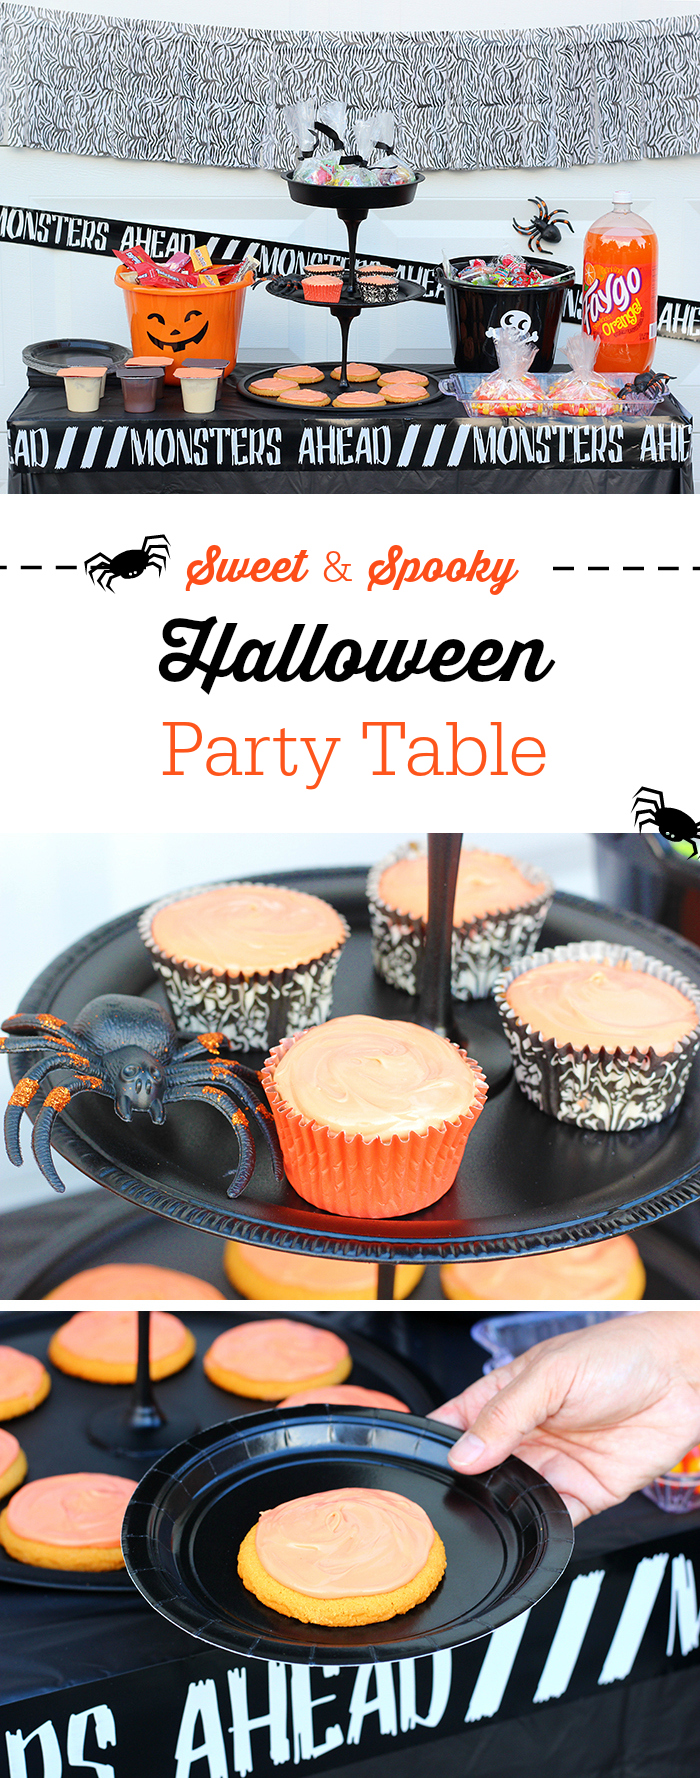 Halloween Party Table that's Sweet and Spooky. Put together an entire party on a tiny budget with easy shortcuts and DIY ideas.